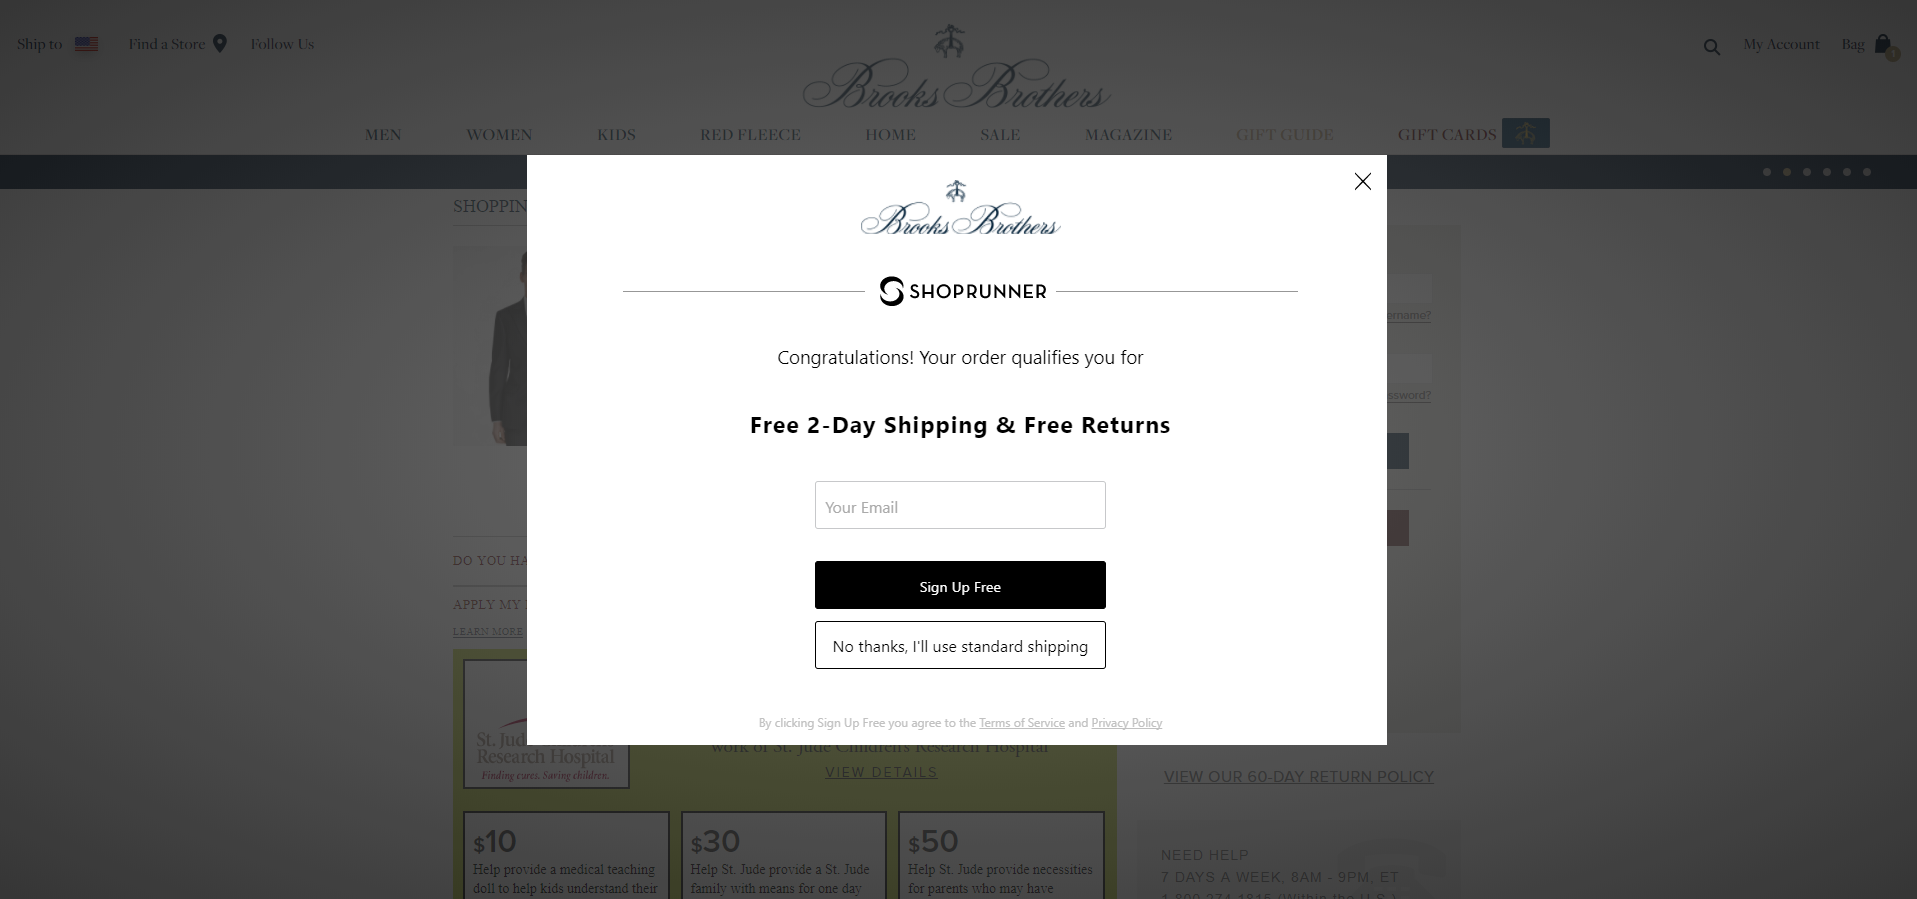 Brooks Brothers' email popup including a free shipping offer